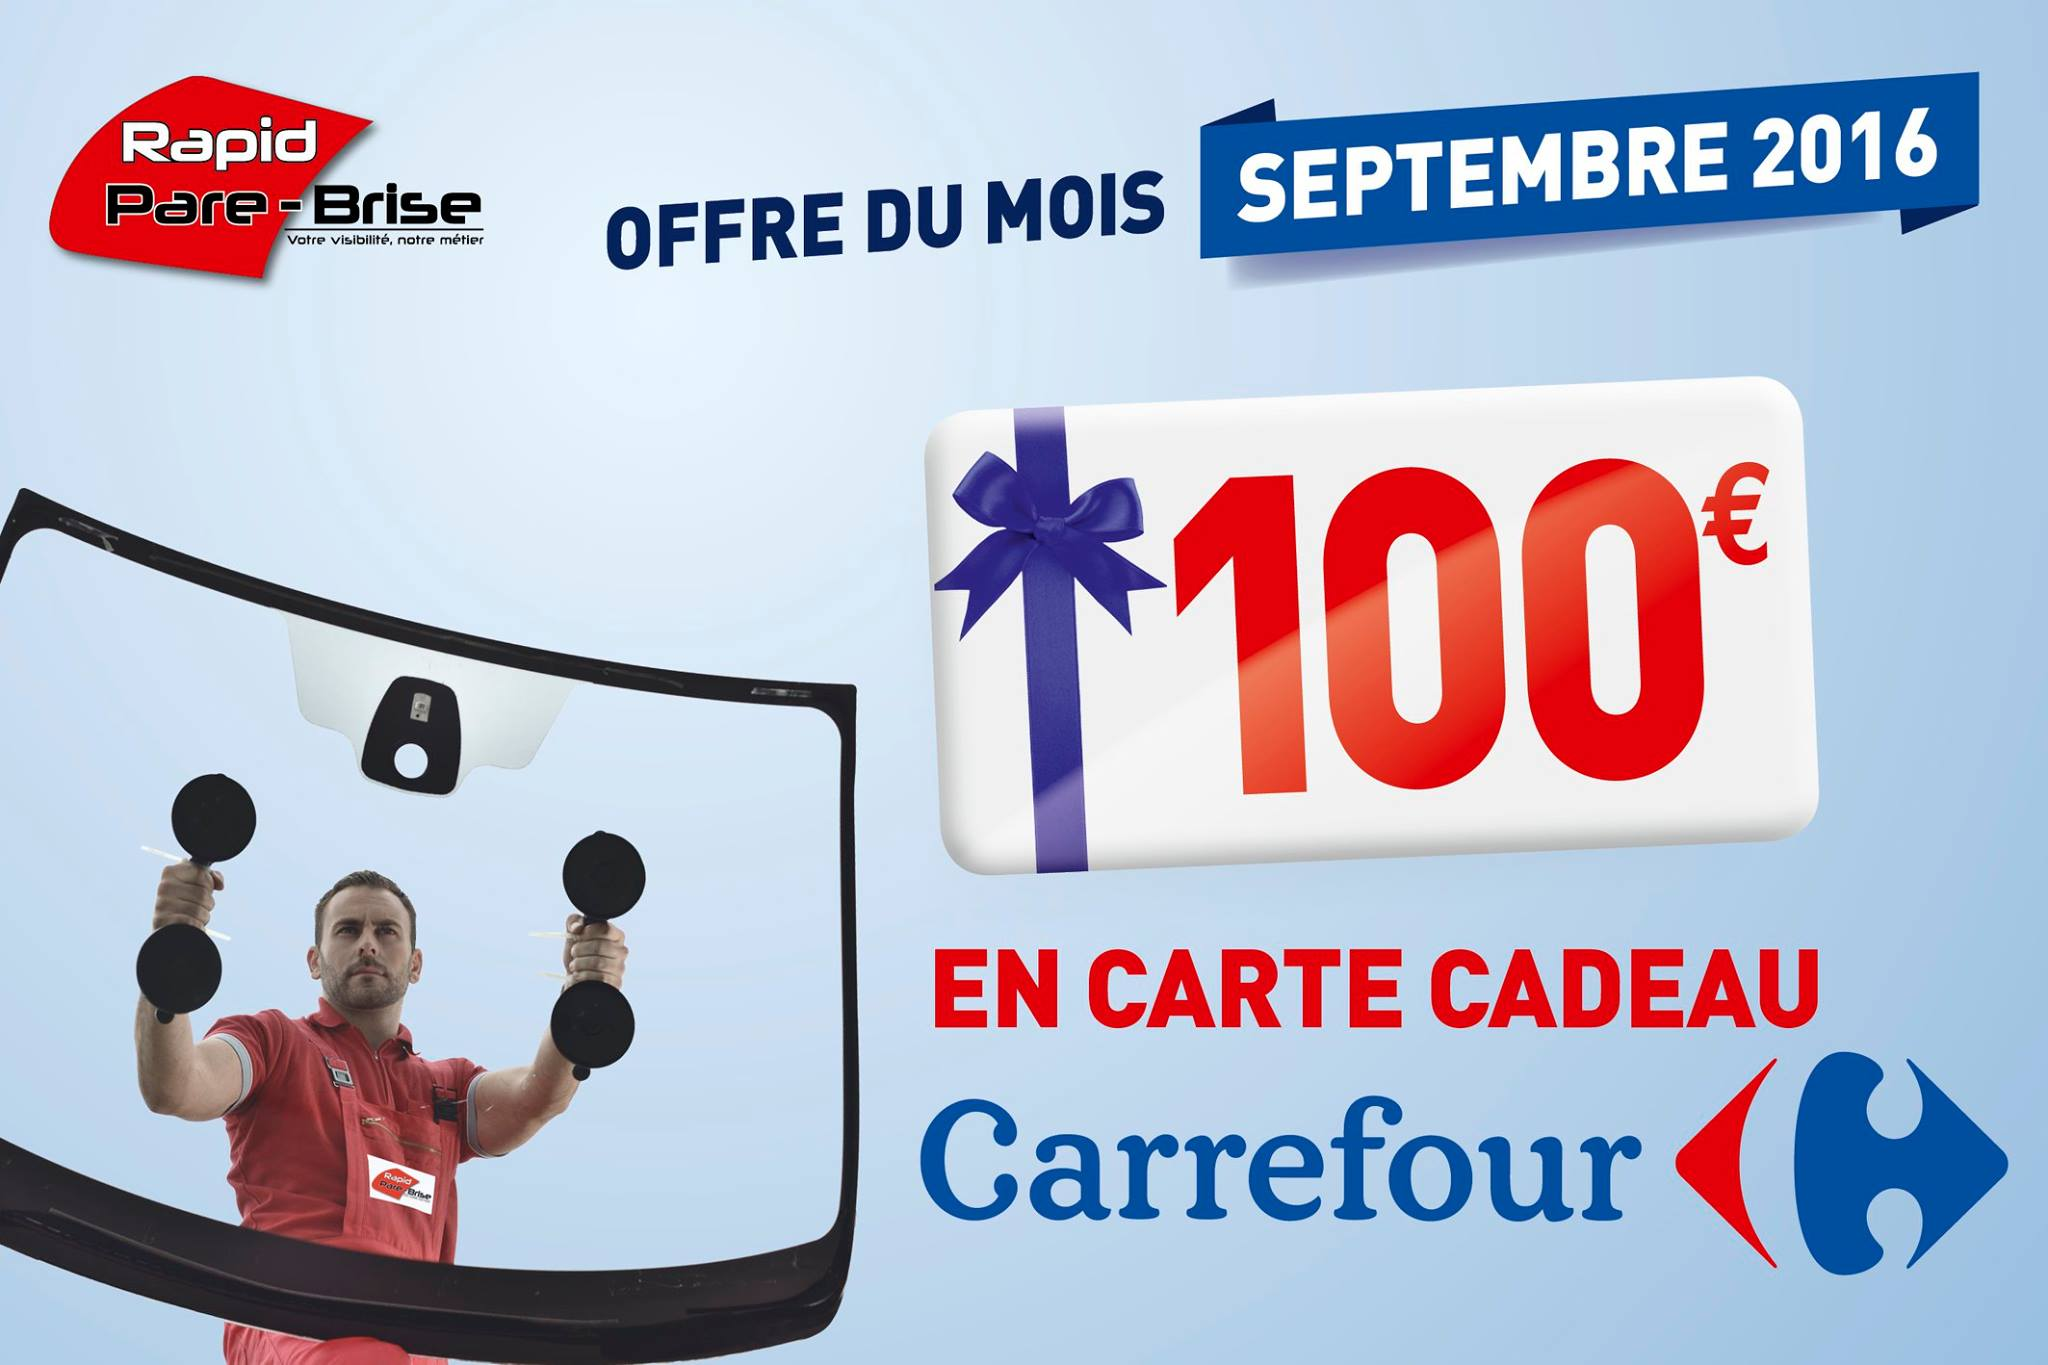 CARTE CADEAU AMAZON CHEZ CARREFOUR